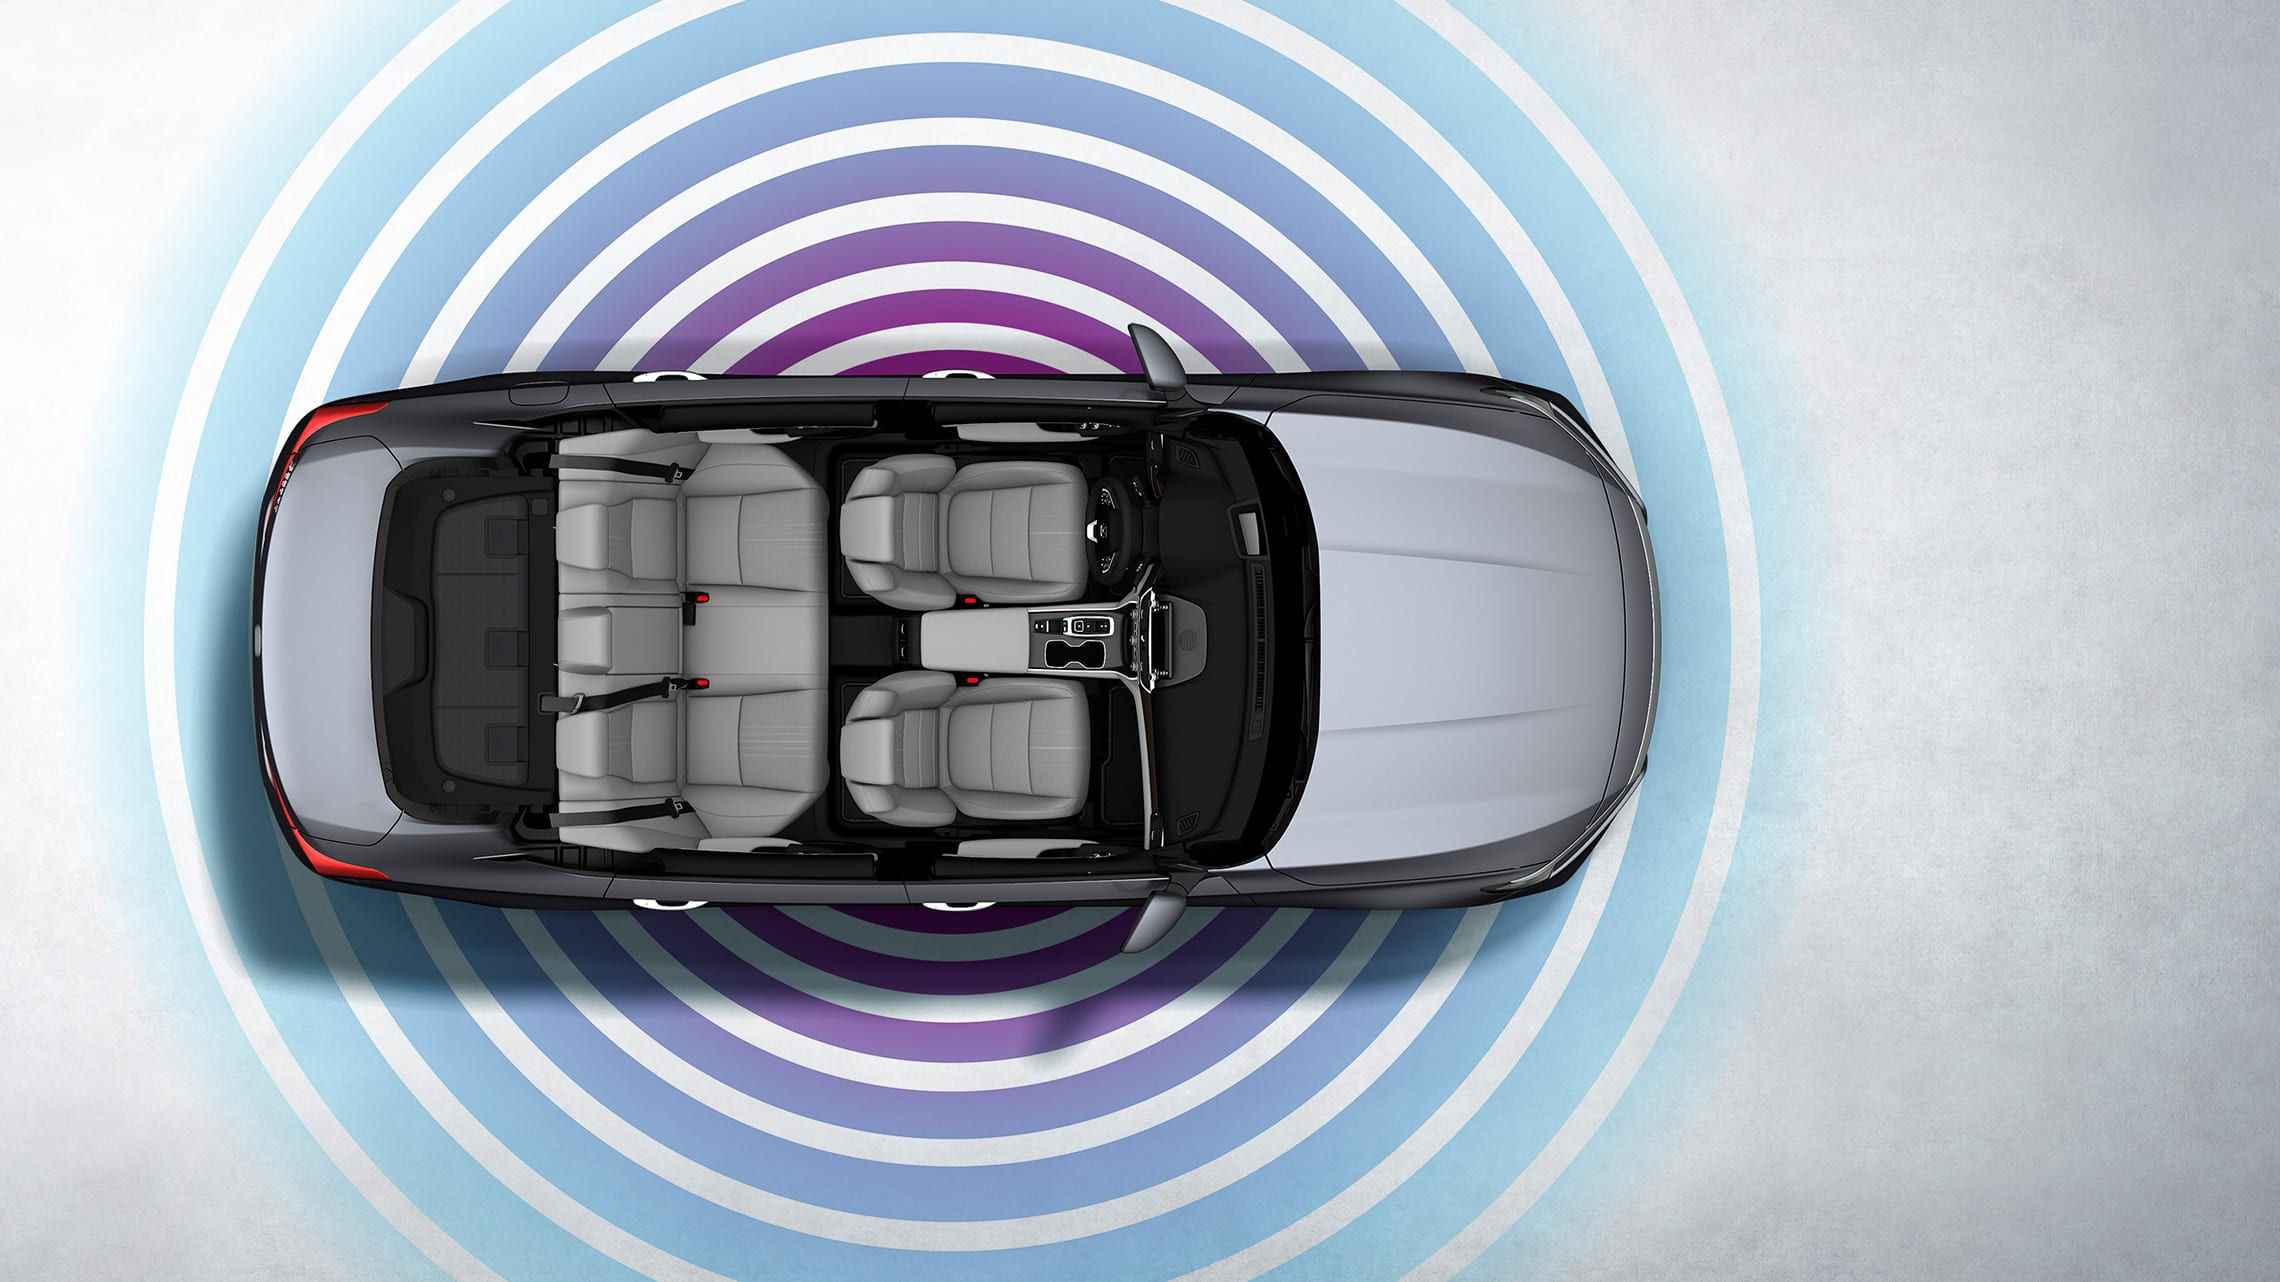 Overhead interior view of the 2020 Honda Accord with illustrated Wi-Fi signal waves.